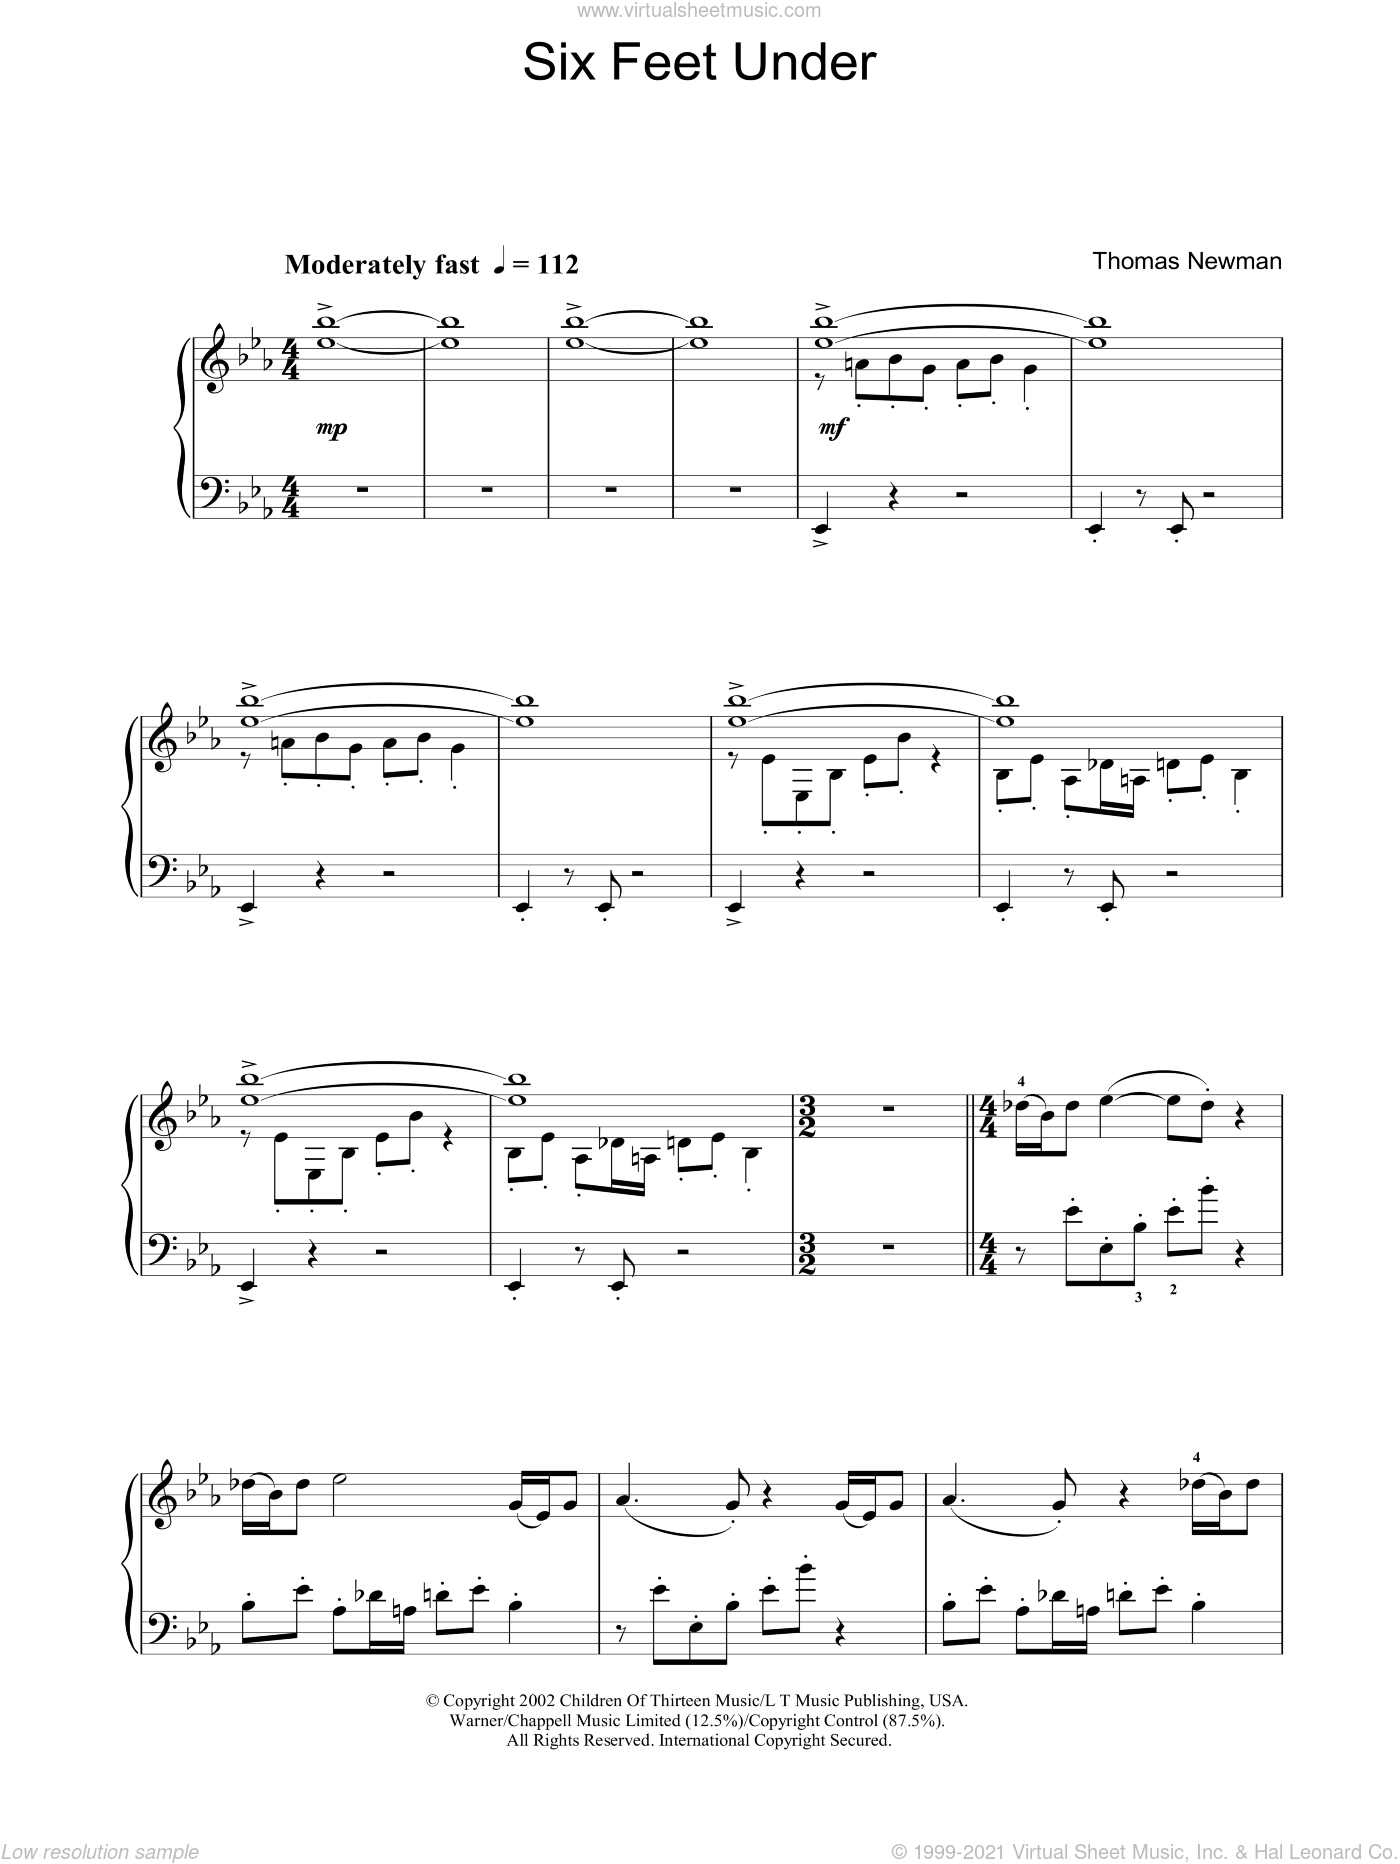 Six Feet Under (Theme) sheet music for piano solo by Thomas Newman